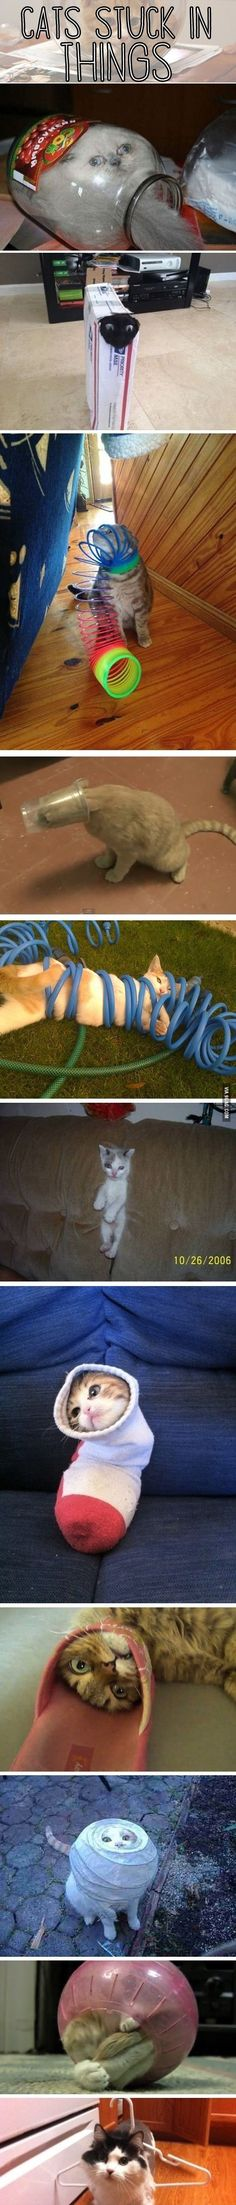 What a predicament - Cats stuck in stuff